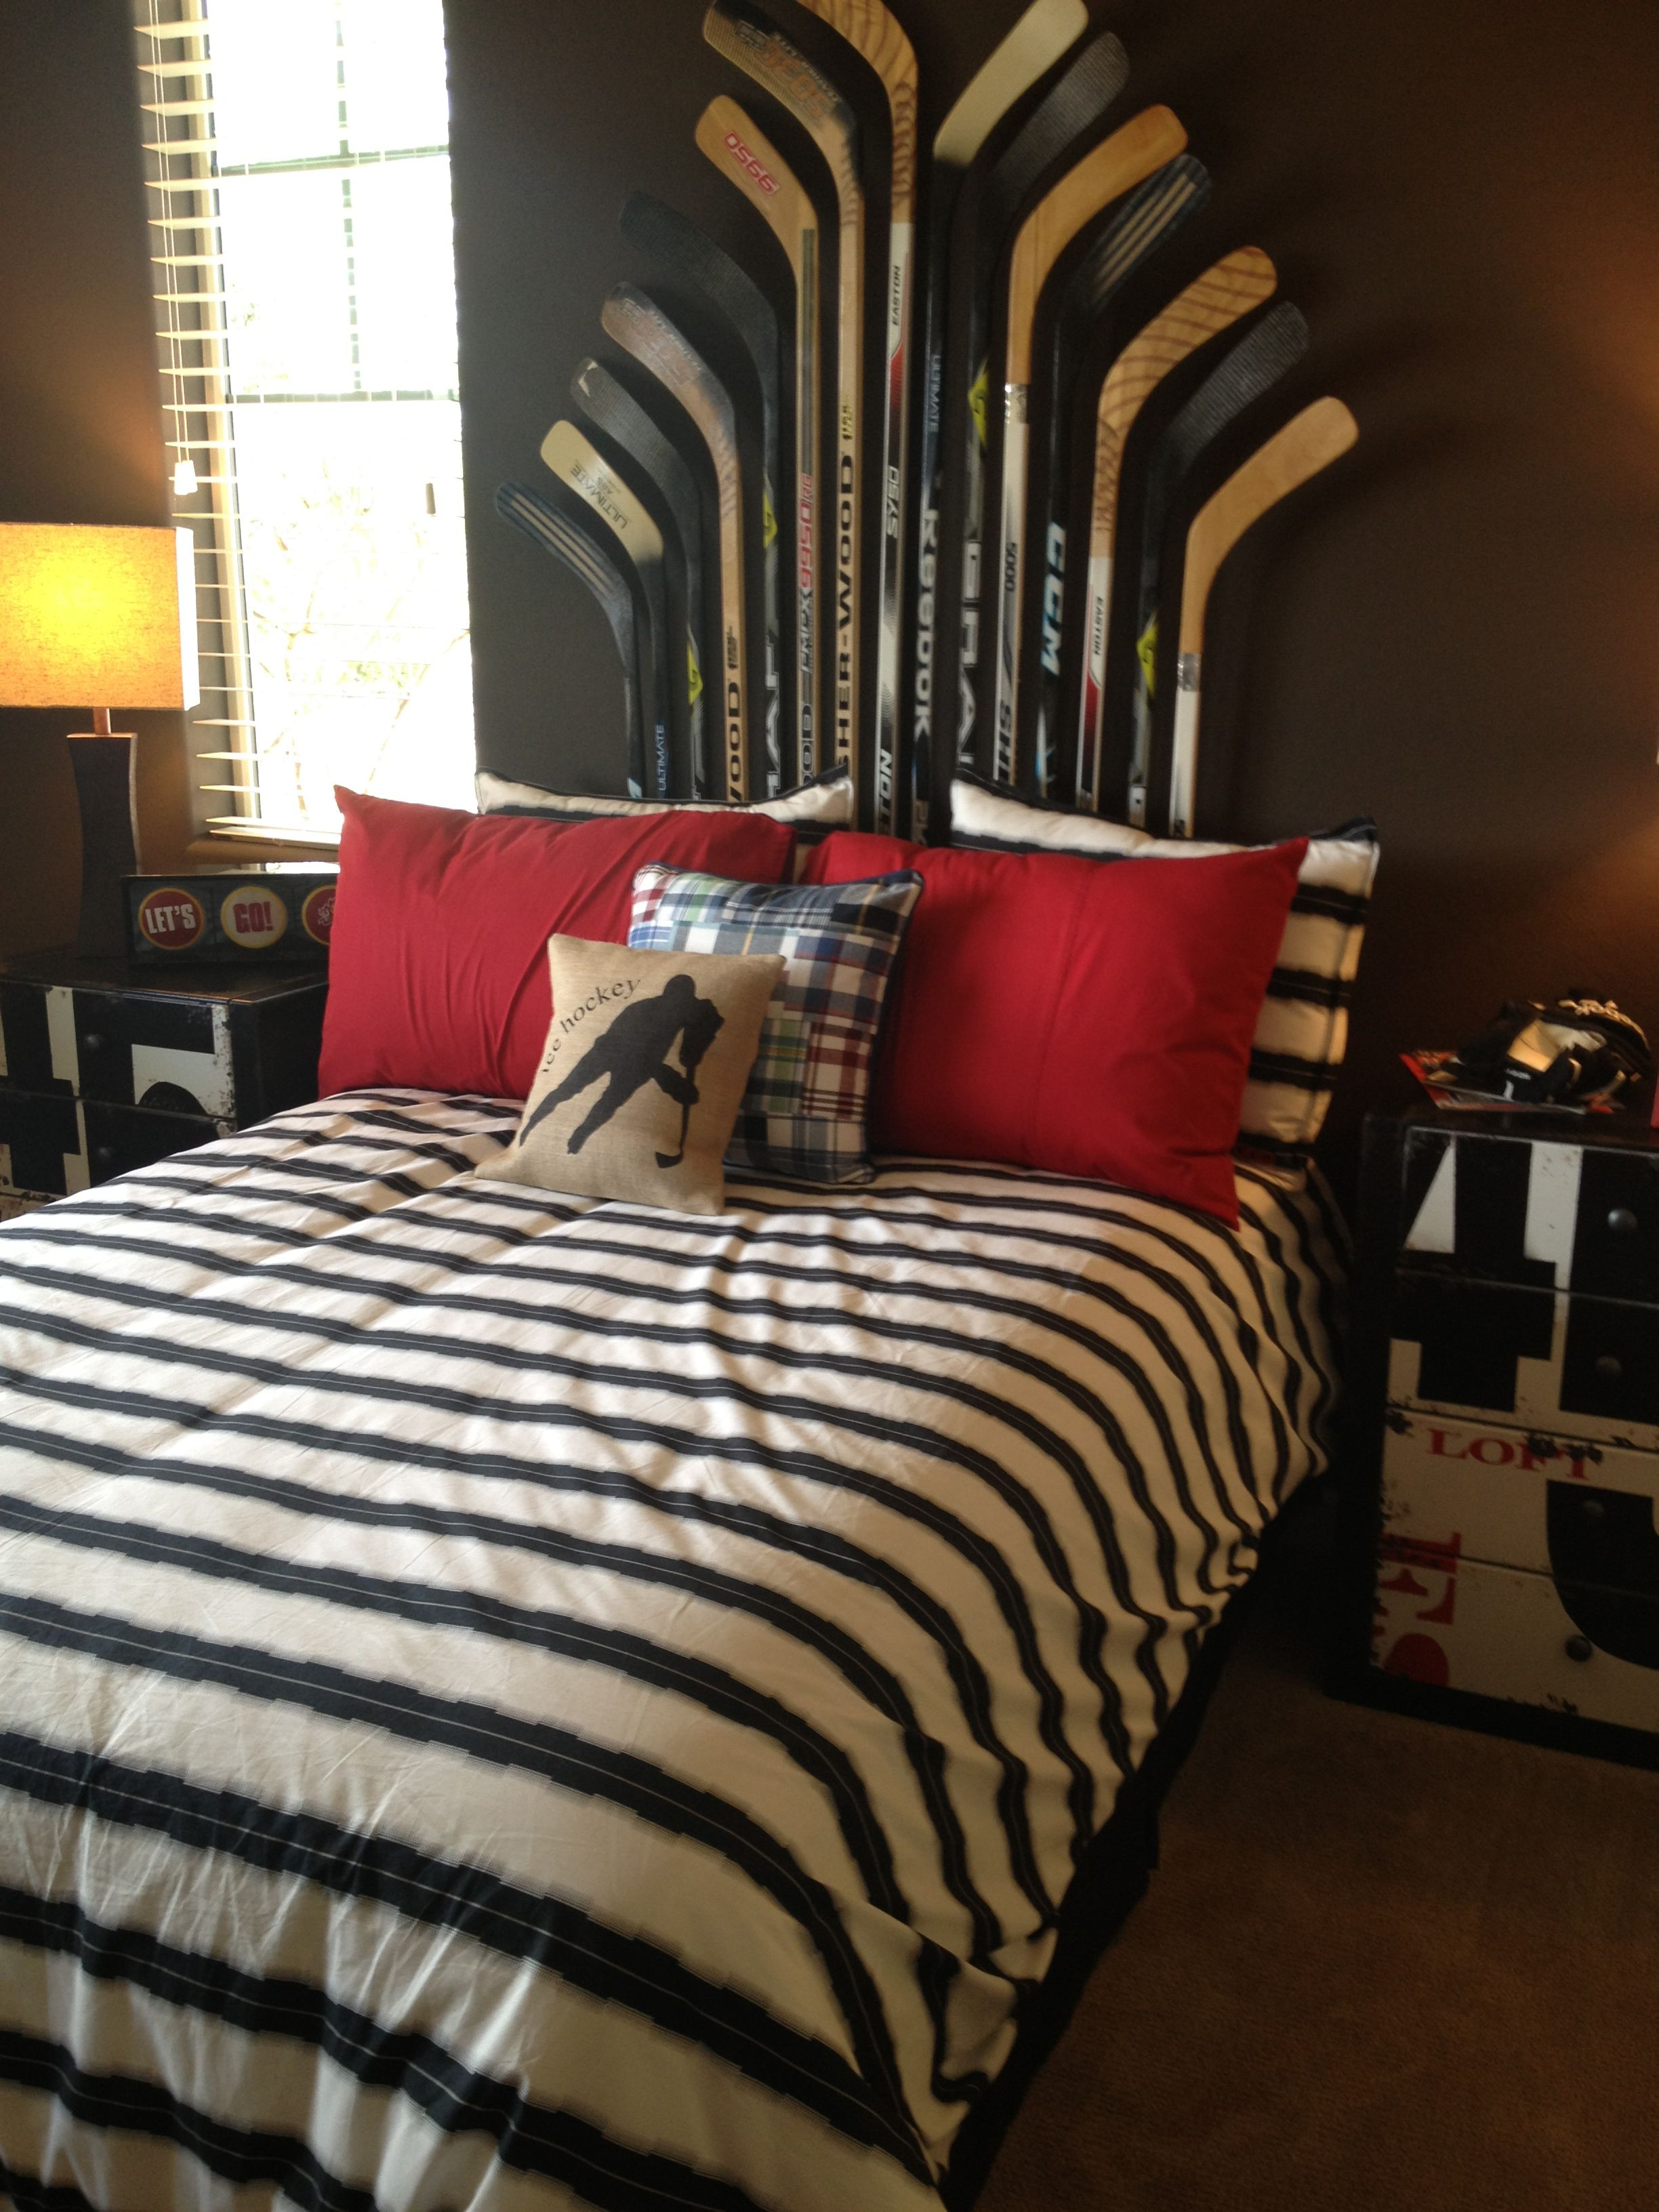 Boys hockey bedroom ideas - Awesome Headboard Idea For My Guest Bedroom Canadiens Stuff Would Be Perfect Hockey Theme Boys